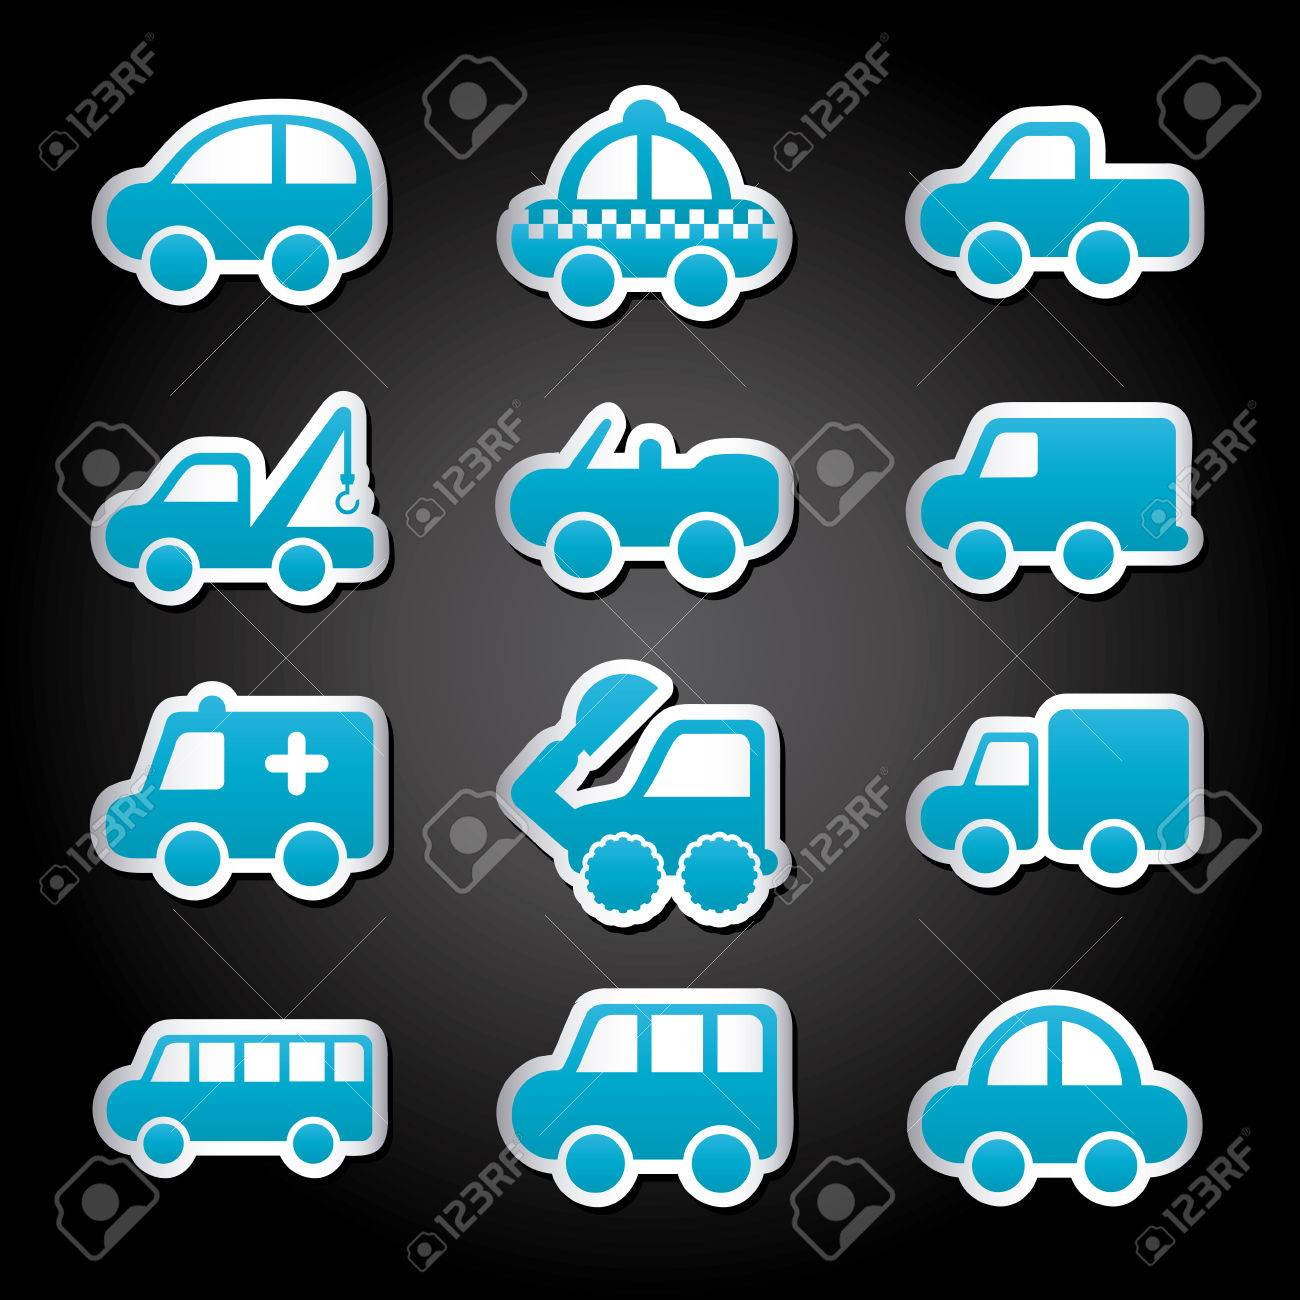 cars design over black background vector illustration Stock Vector - 22311038